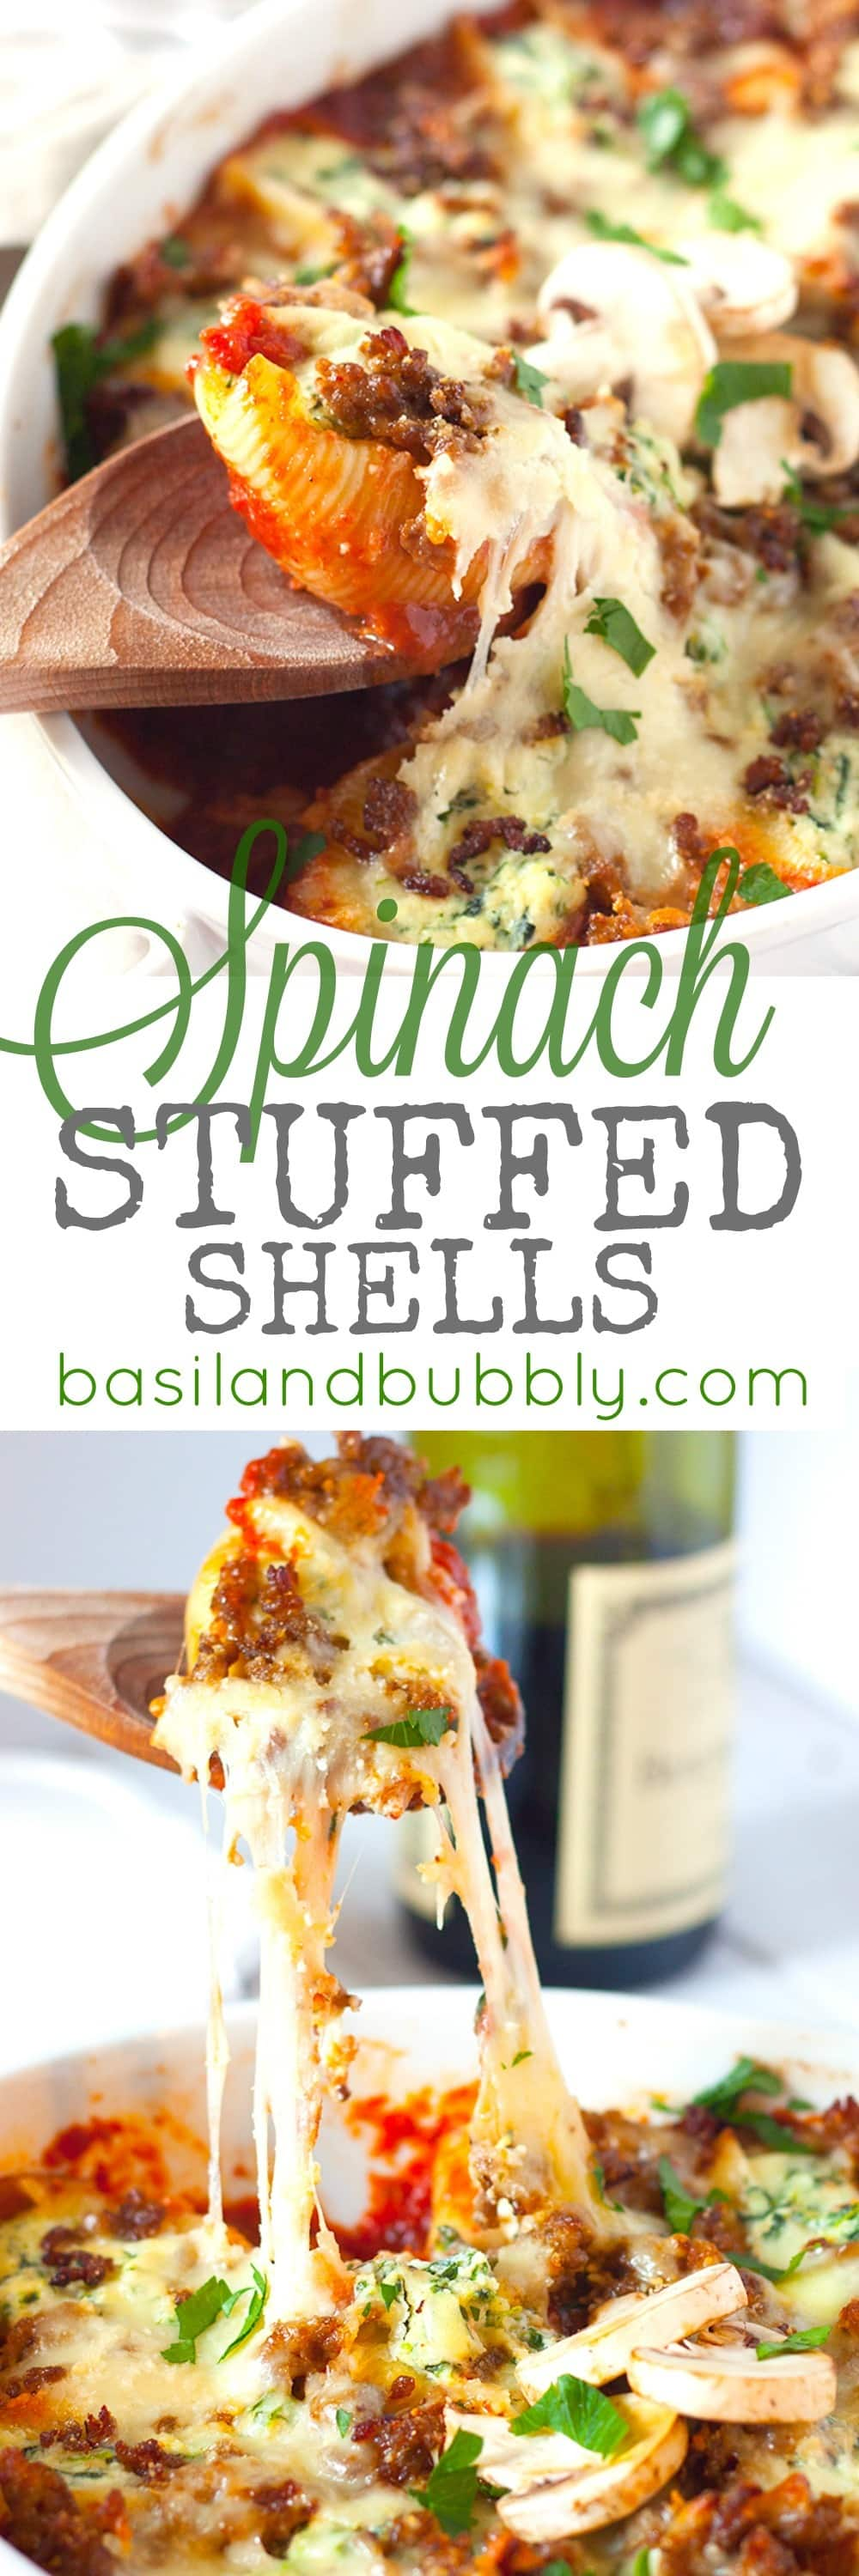 Spinach Stuffed Shells with Sausage and Mushroom Red Wine Sauce